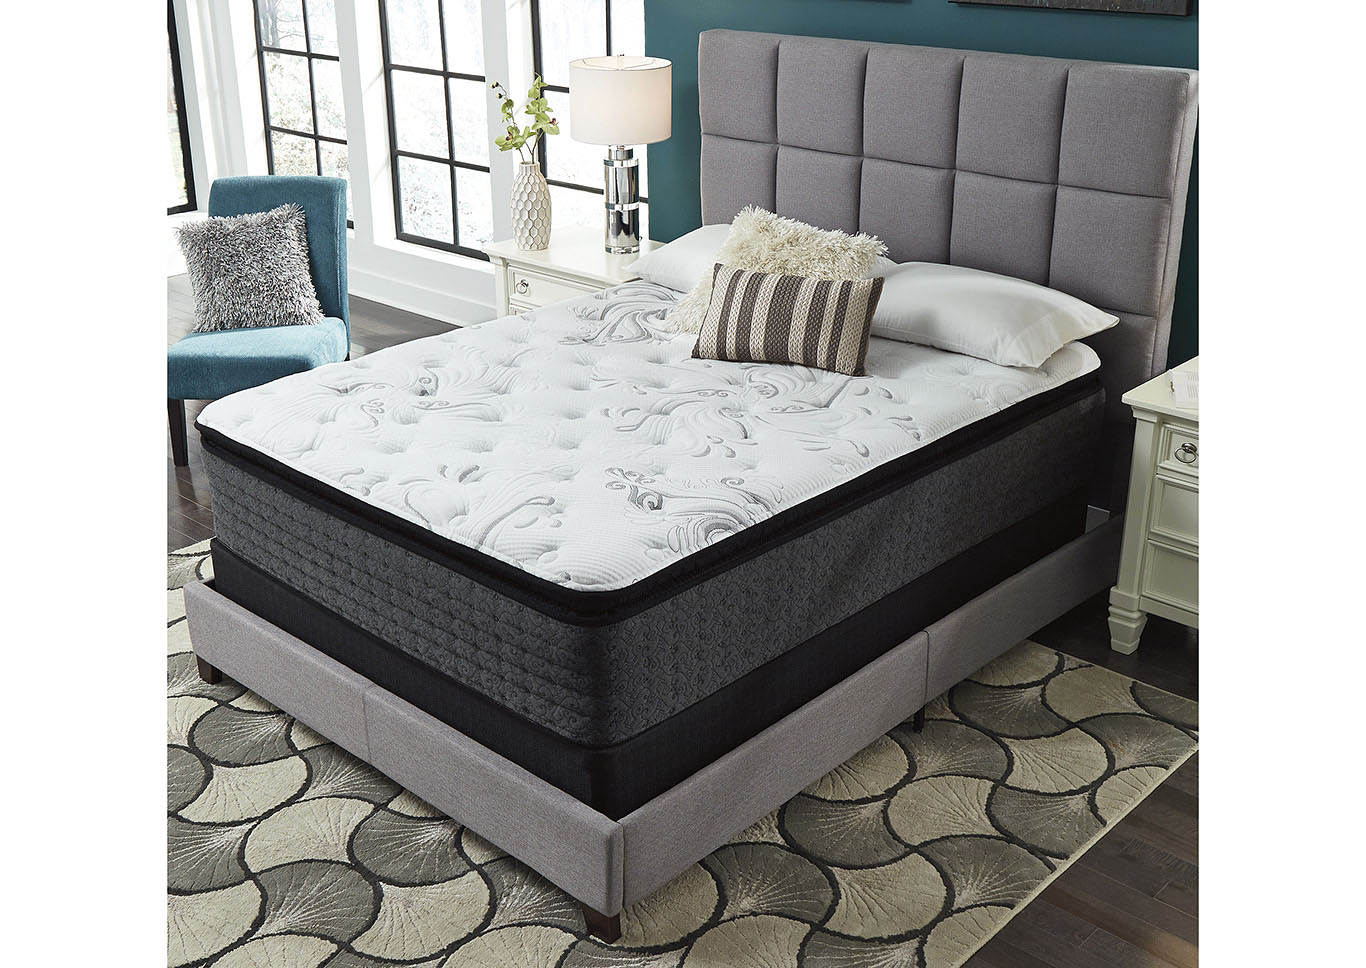 Bar Harbor Firm PT Queen Mattress,Ashley